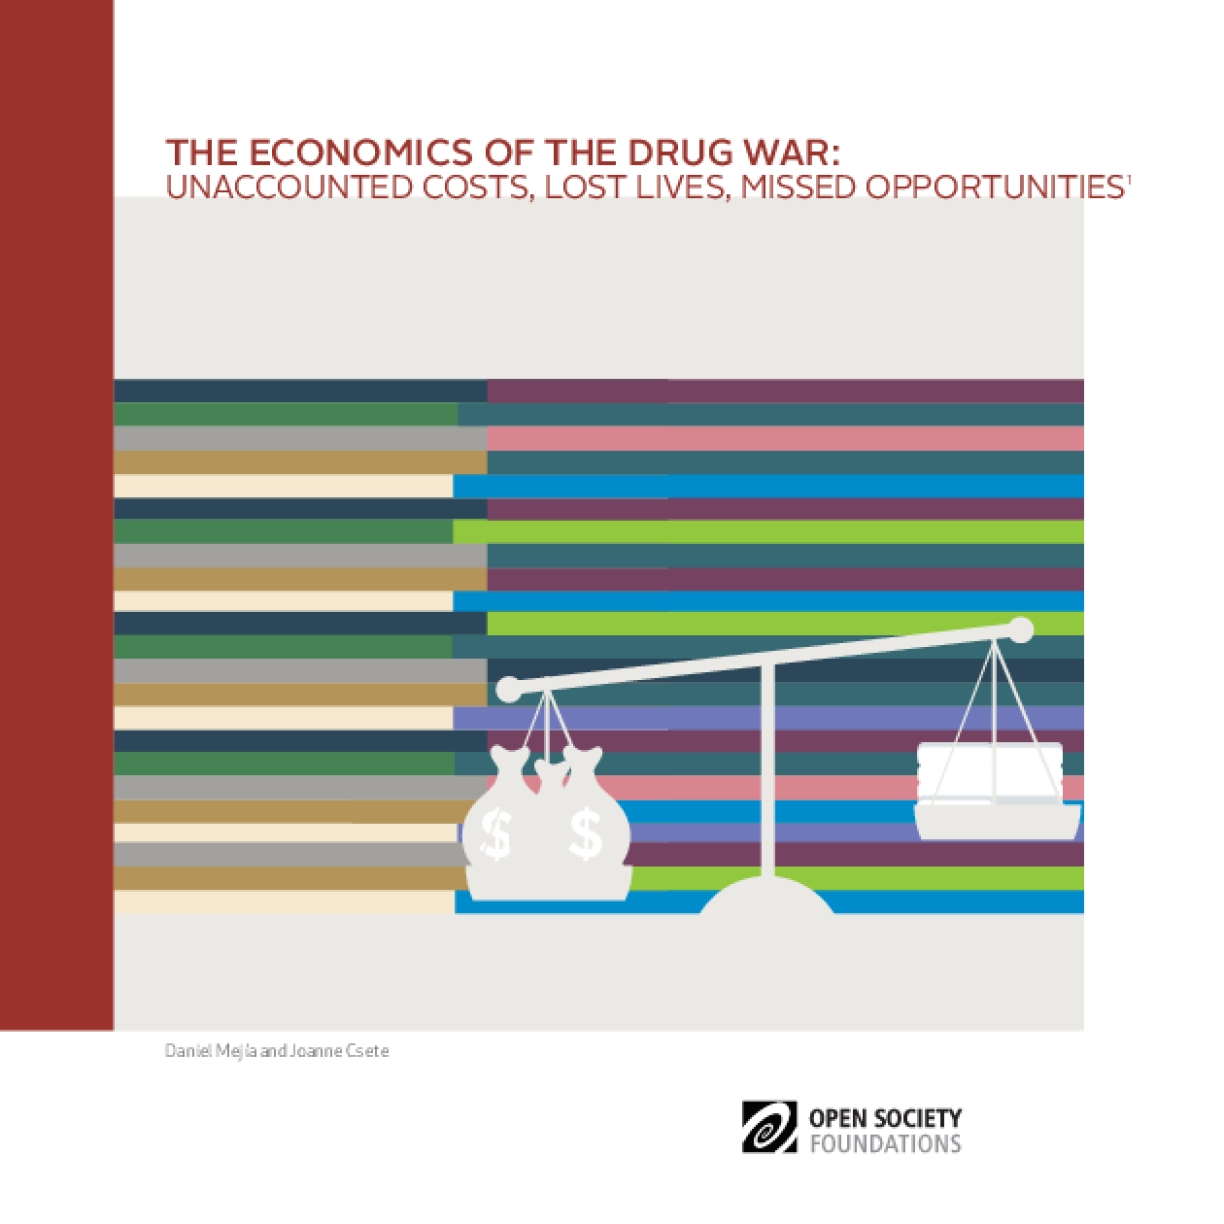 The Economics of the Drug War: Unaccounted Costs, Lost Lives, Missed Opportunities